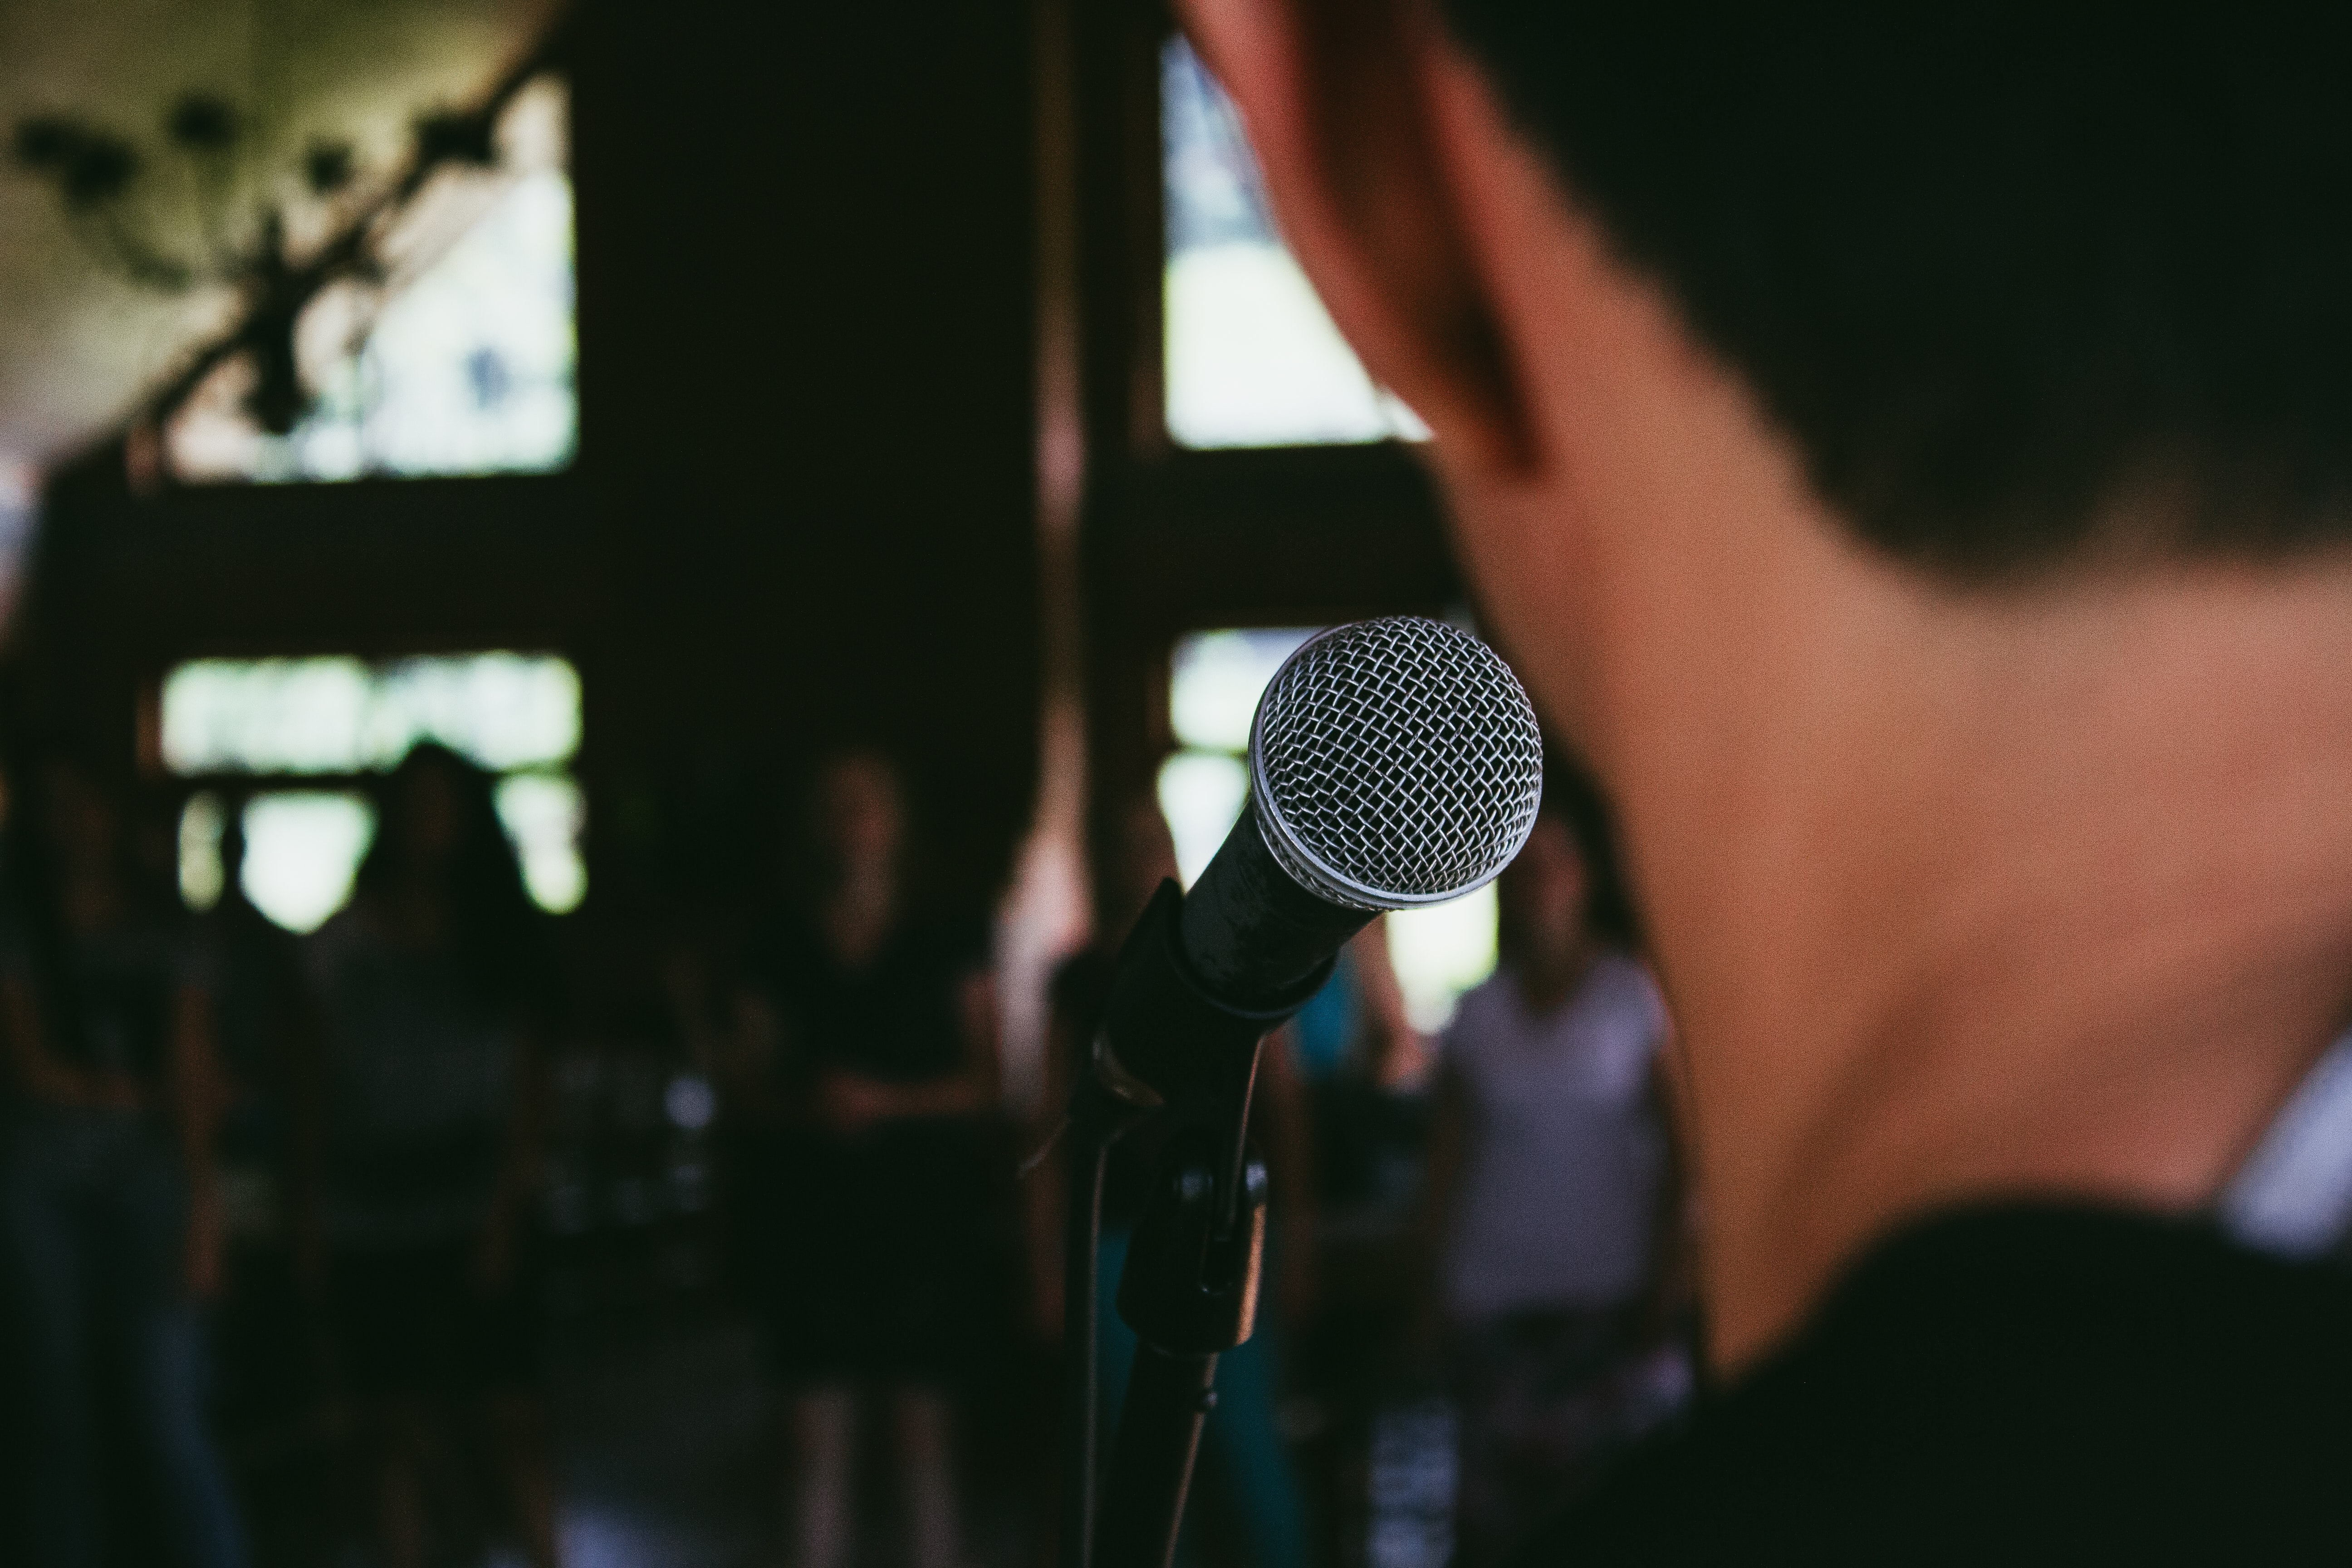 A man standing in front of a microphone in a stand